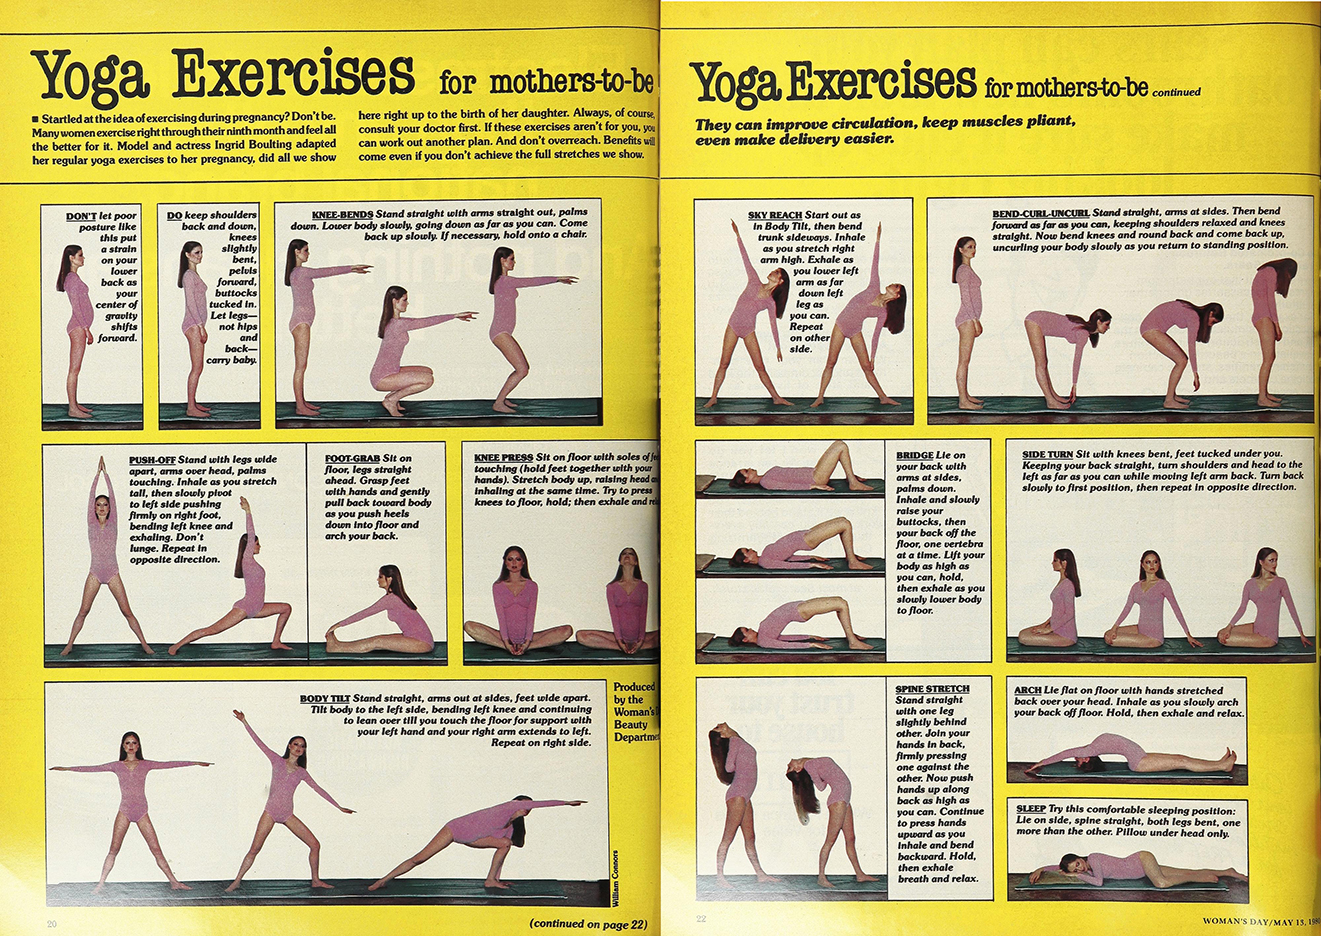 Ingrid's pre-natal yoga routine in Women's Day, May 13th, 1980.